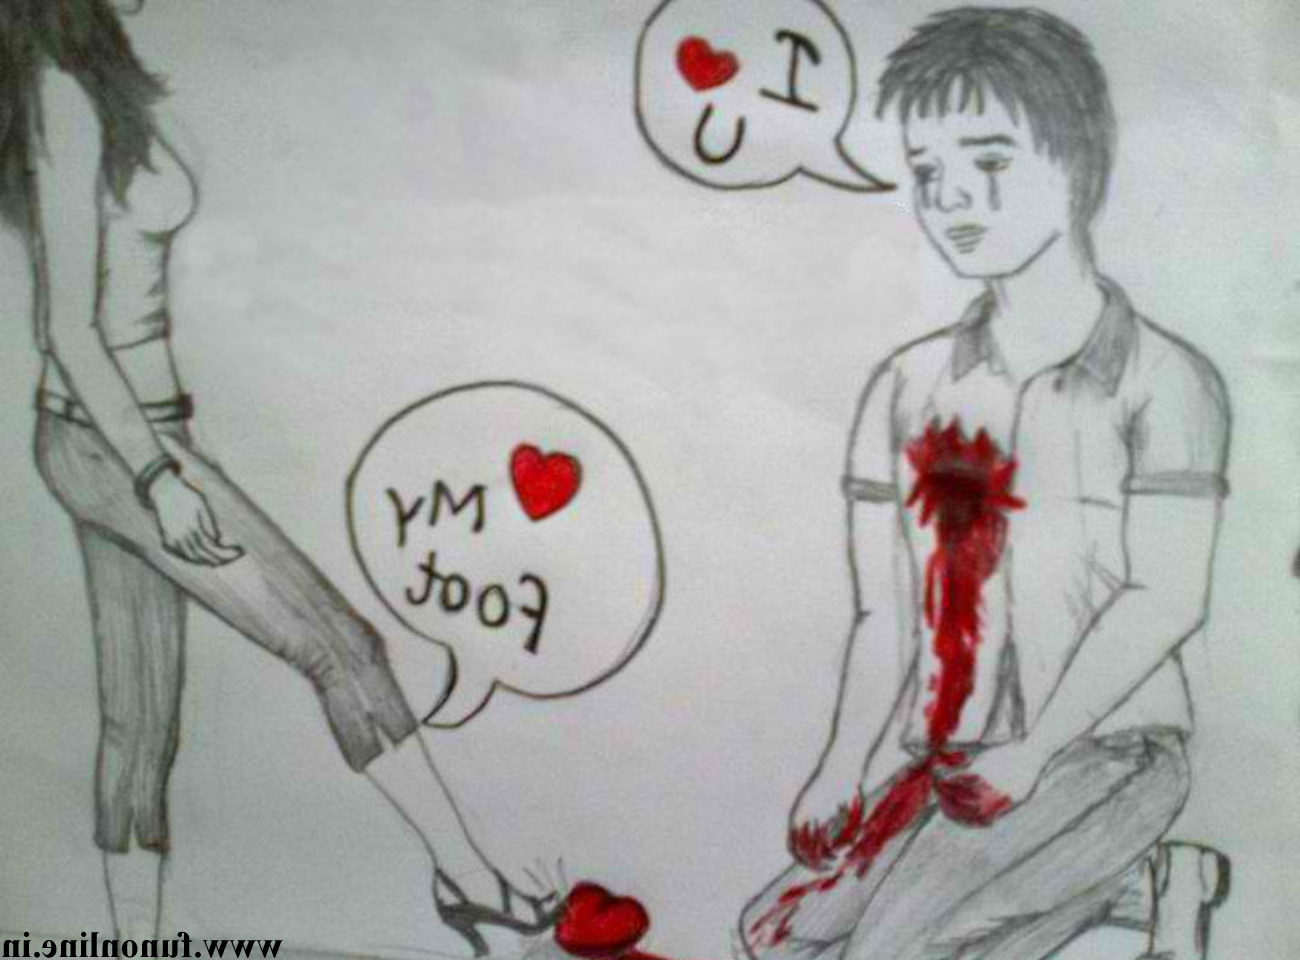 1300x960 Boy And Girl Love Sketch Images Sad Drawings Of Boys And Girls